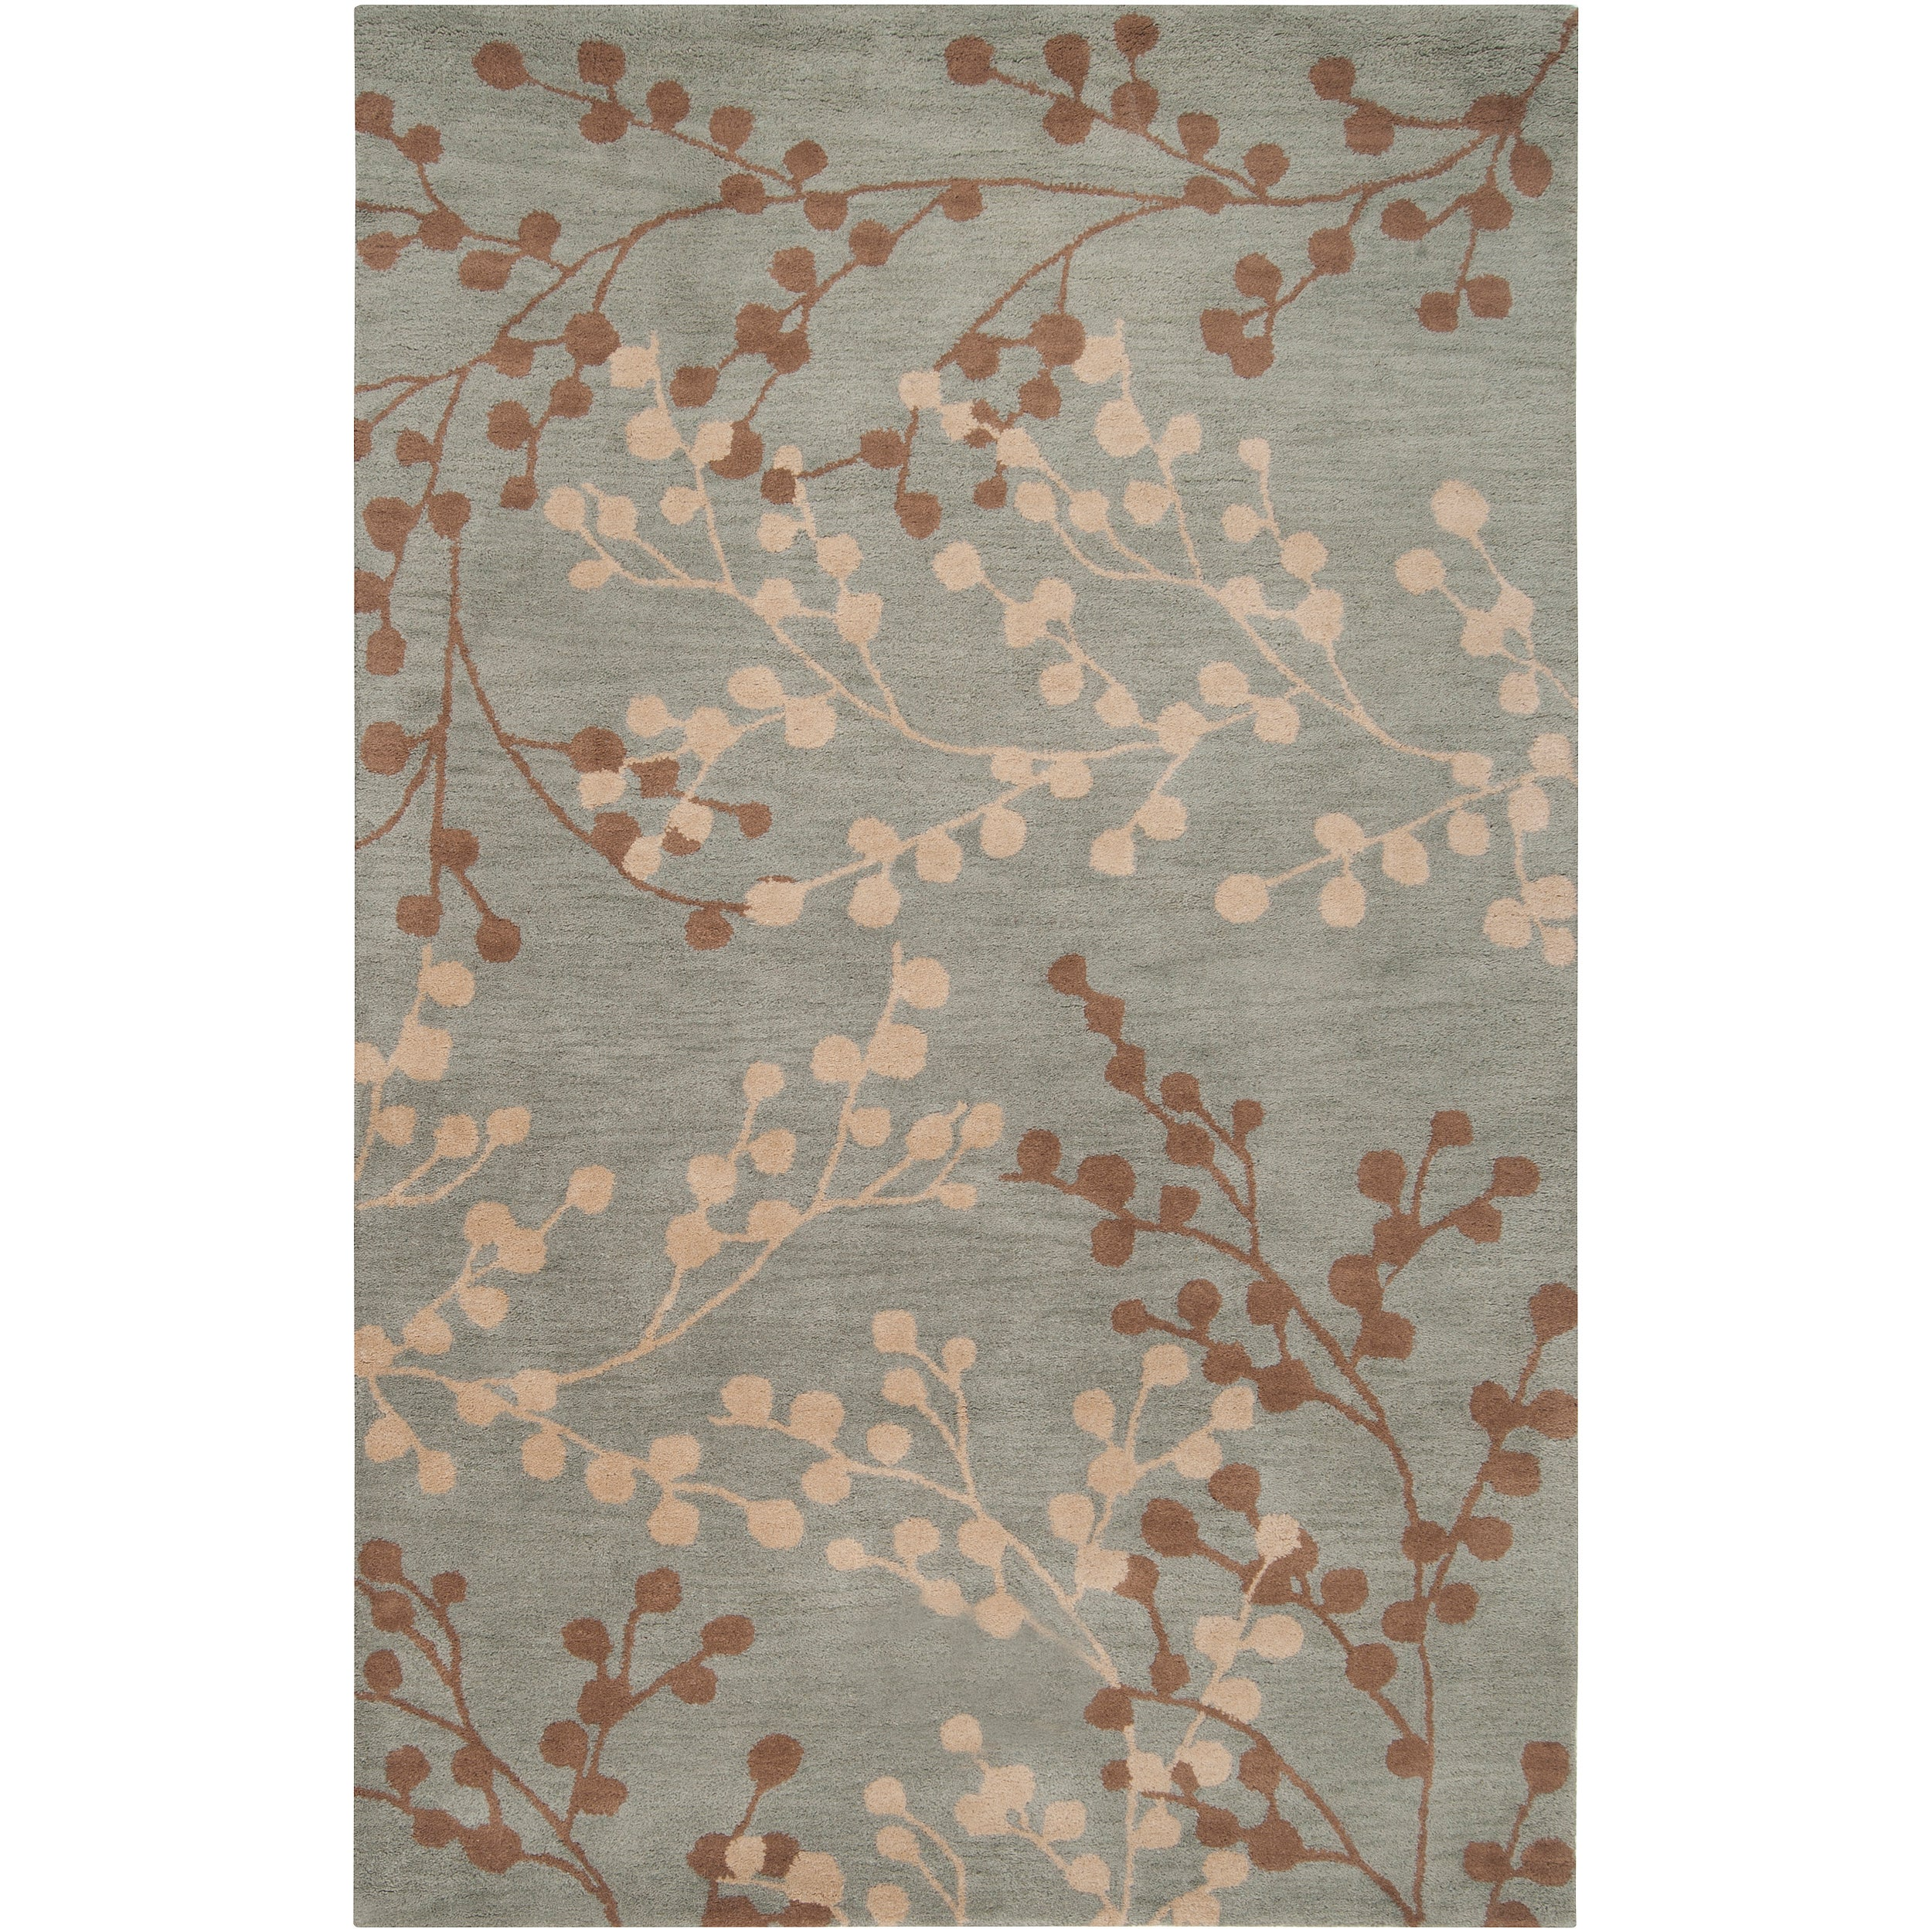 Hand tufted blossom blue floral wool rug 8 39 x10 39 free for Home decorators rugs blue